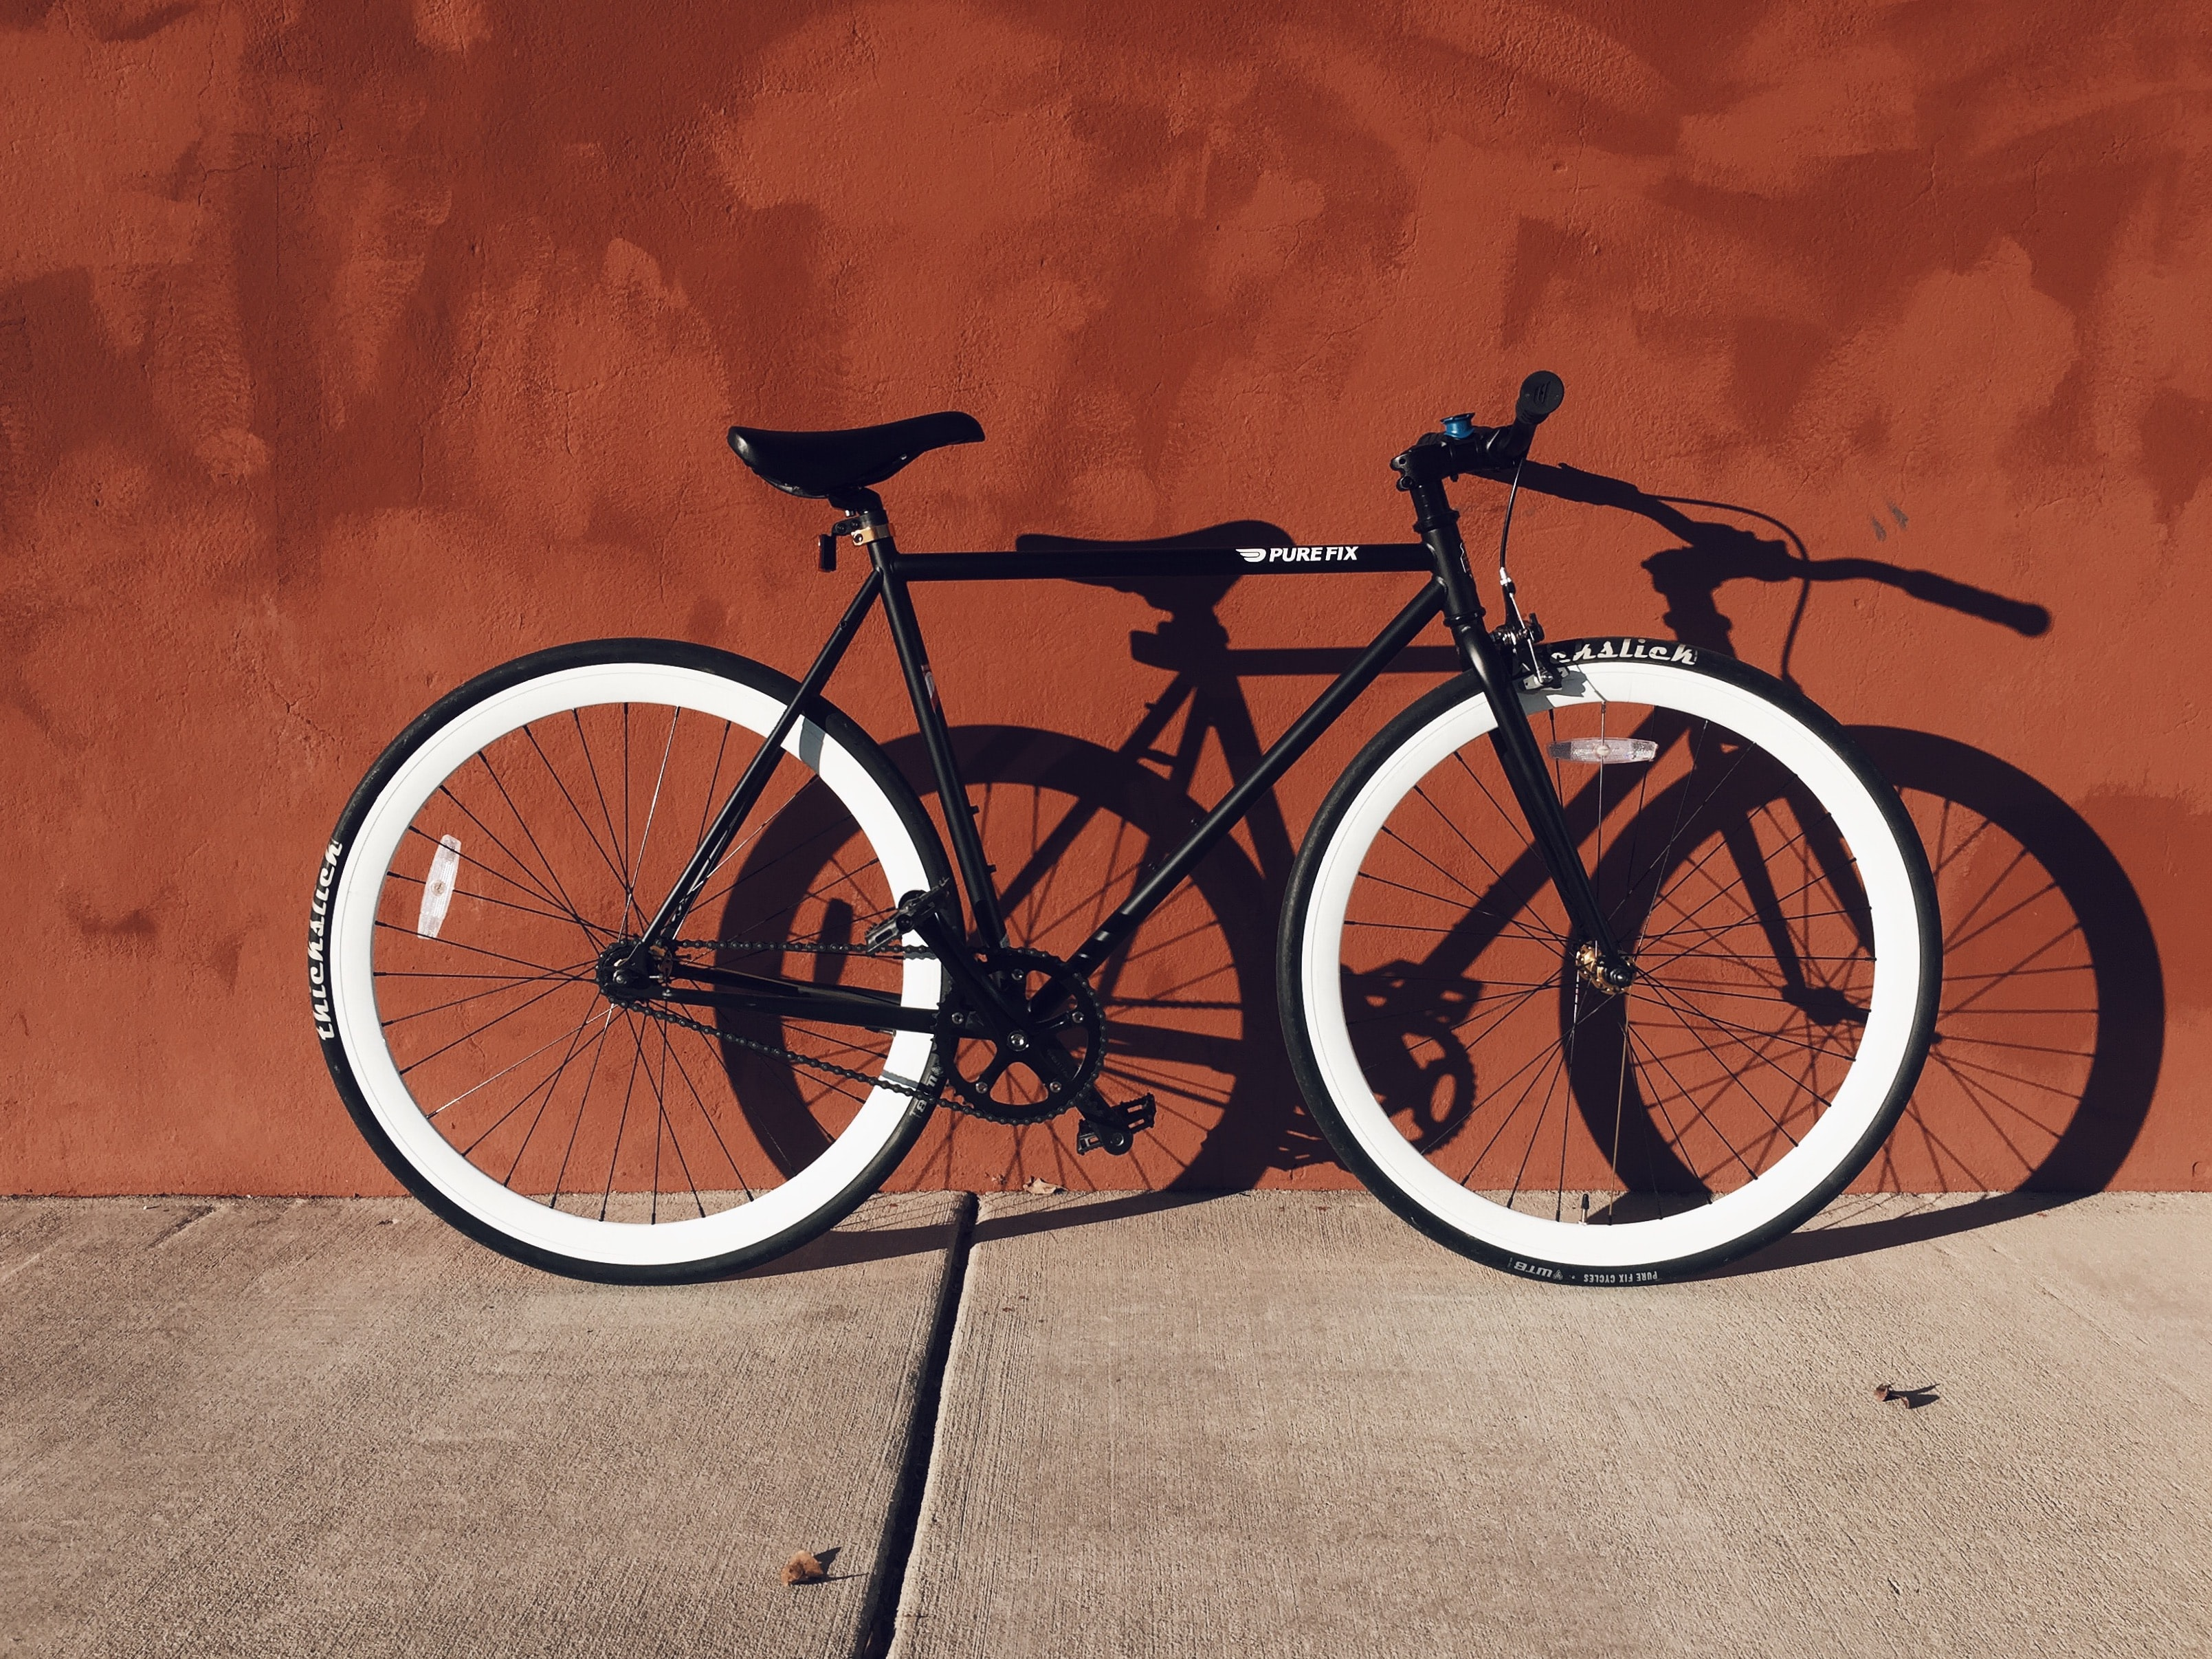 black and white mountain bicycle near brown wall